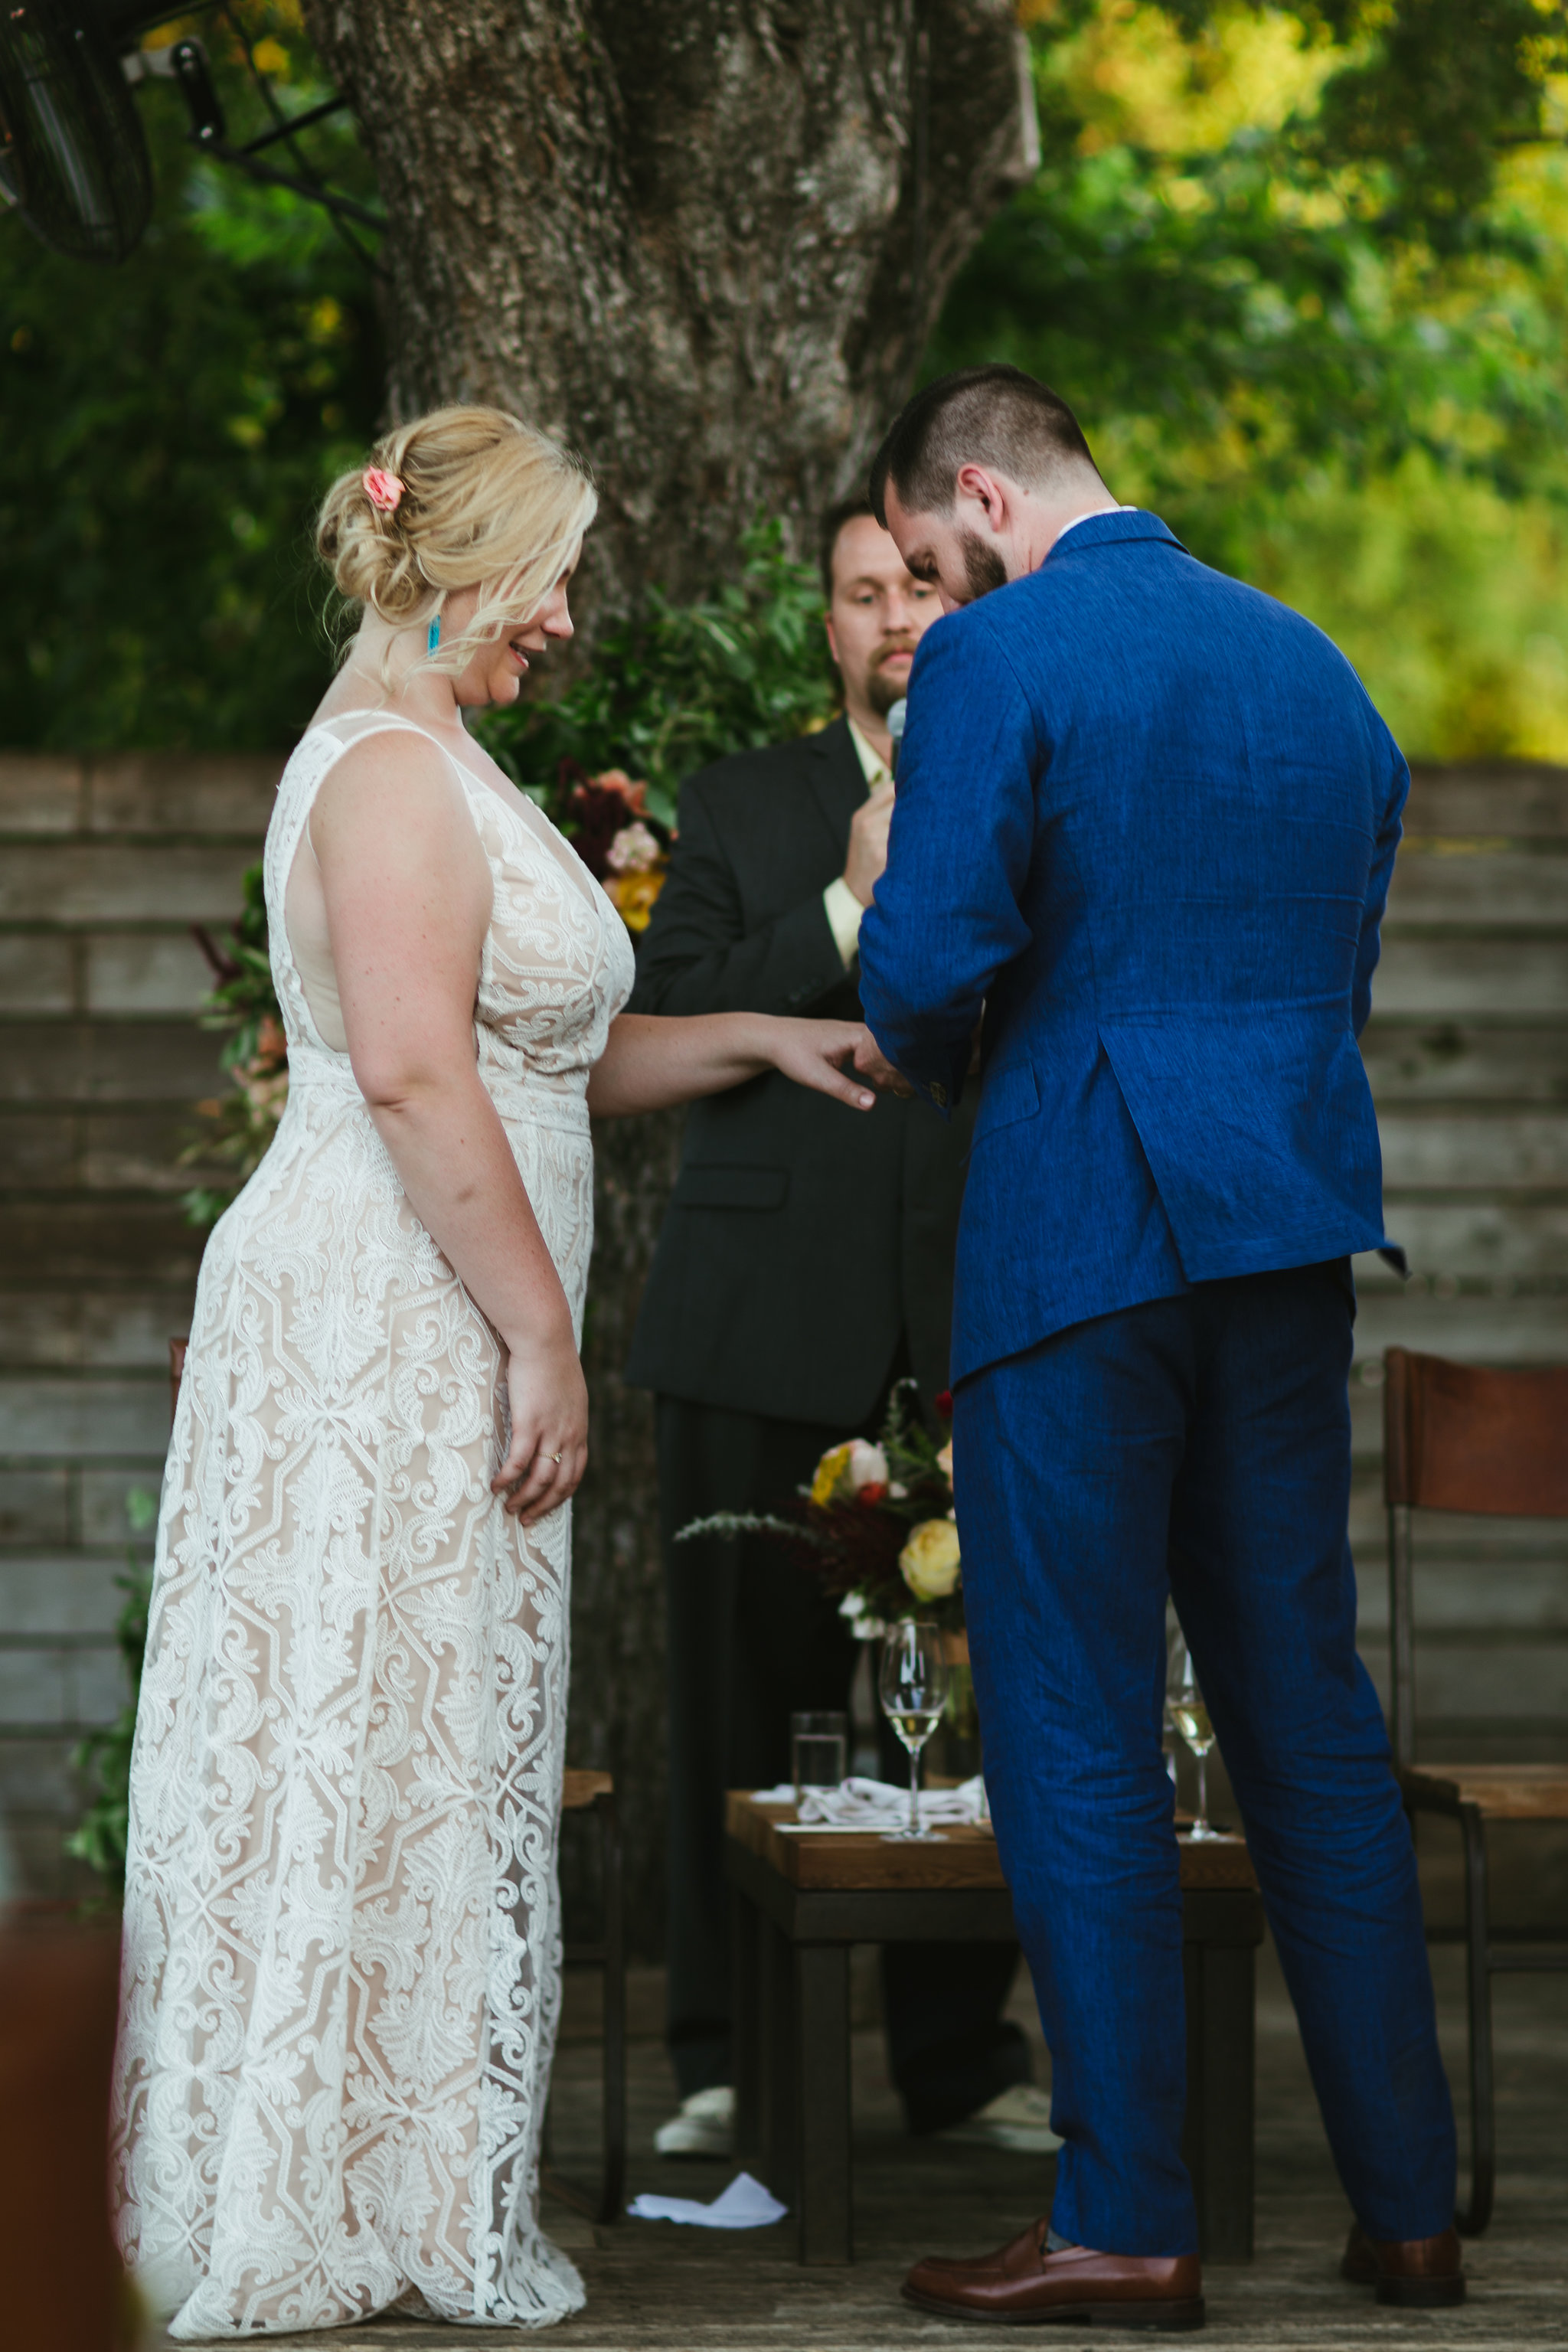 Paige-Newton-Intimate-Wedding-Photographer-Contigo-Wedding-Austin-Texas0077.jpg